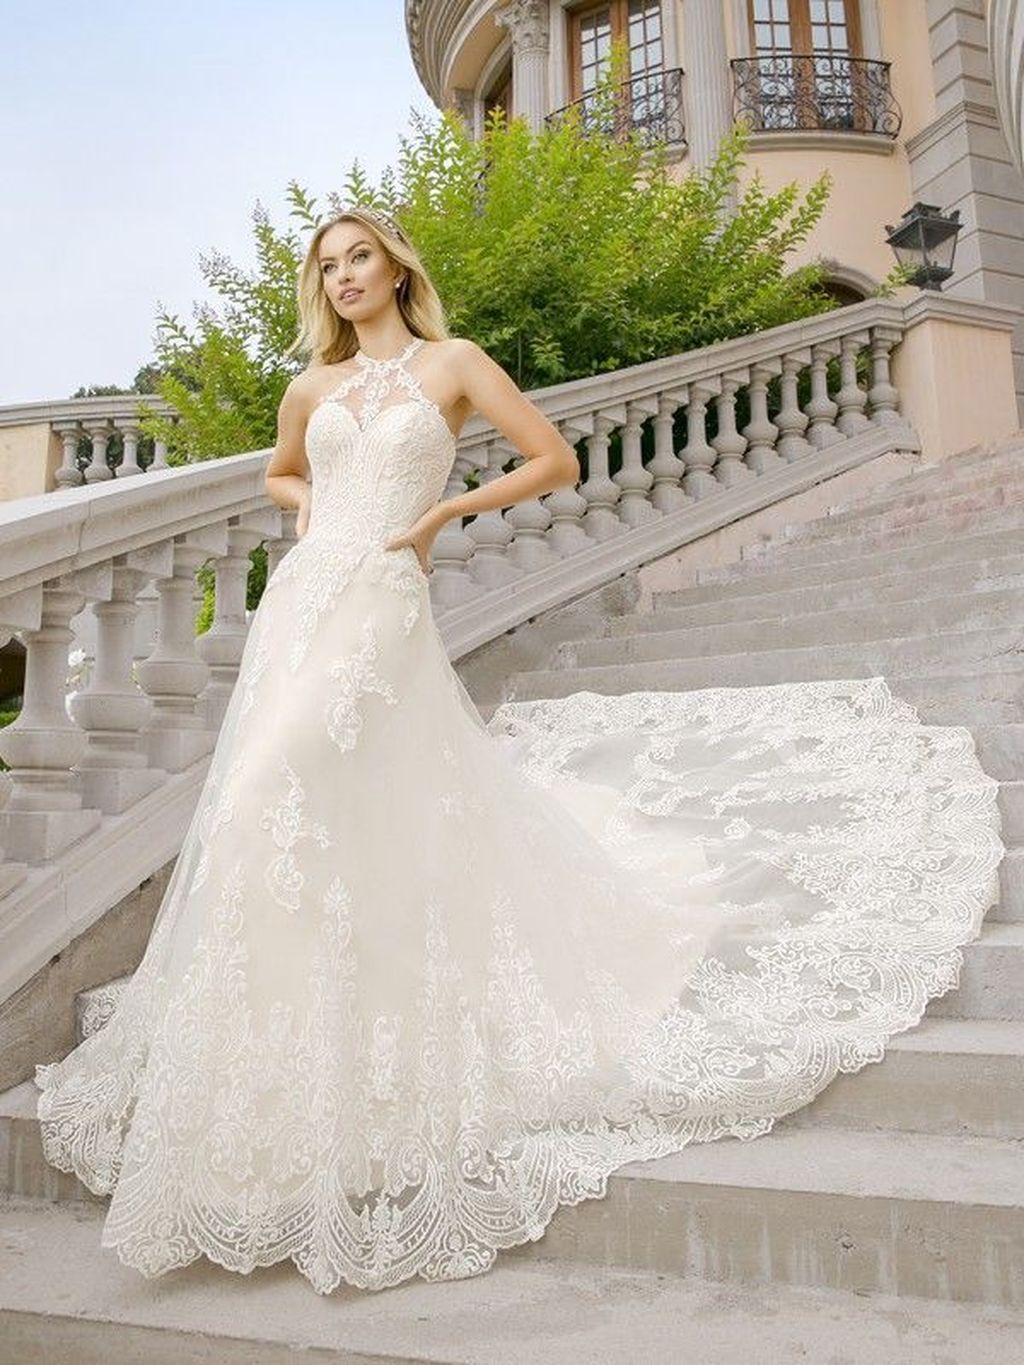 totally stunning country wedding dress ideas country wedding